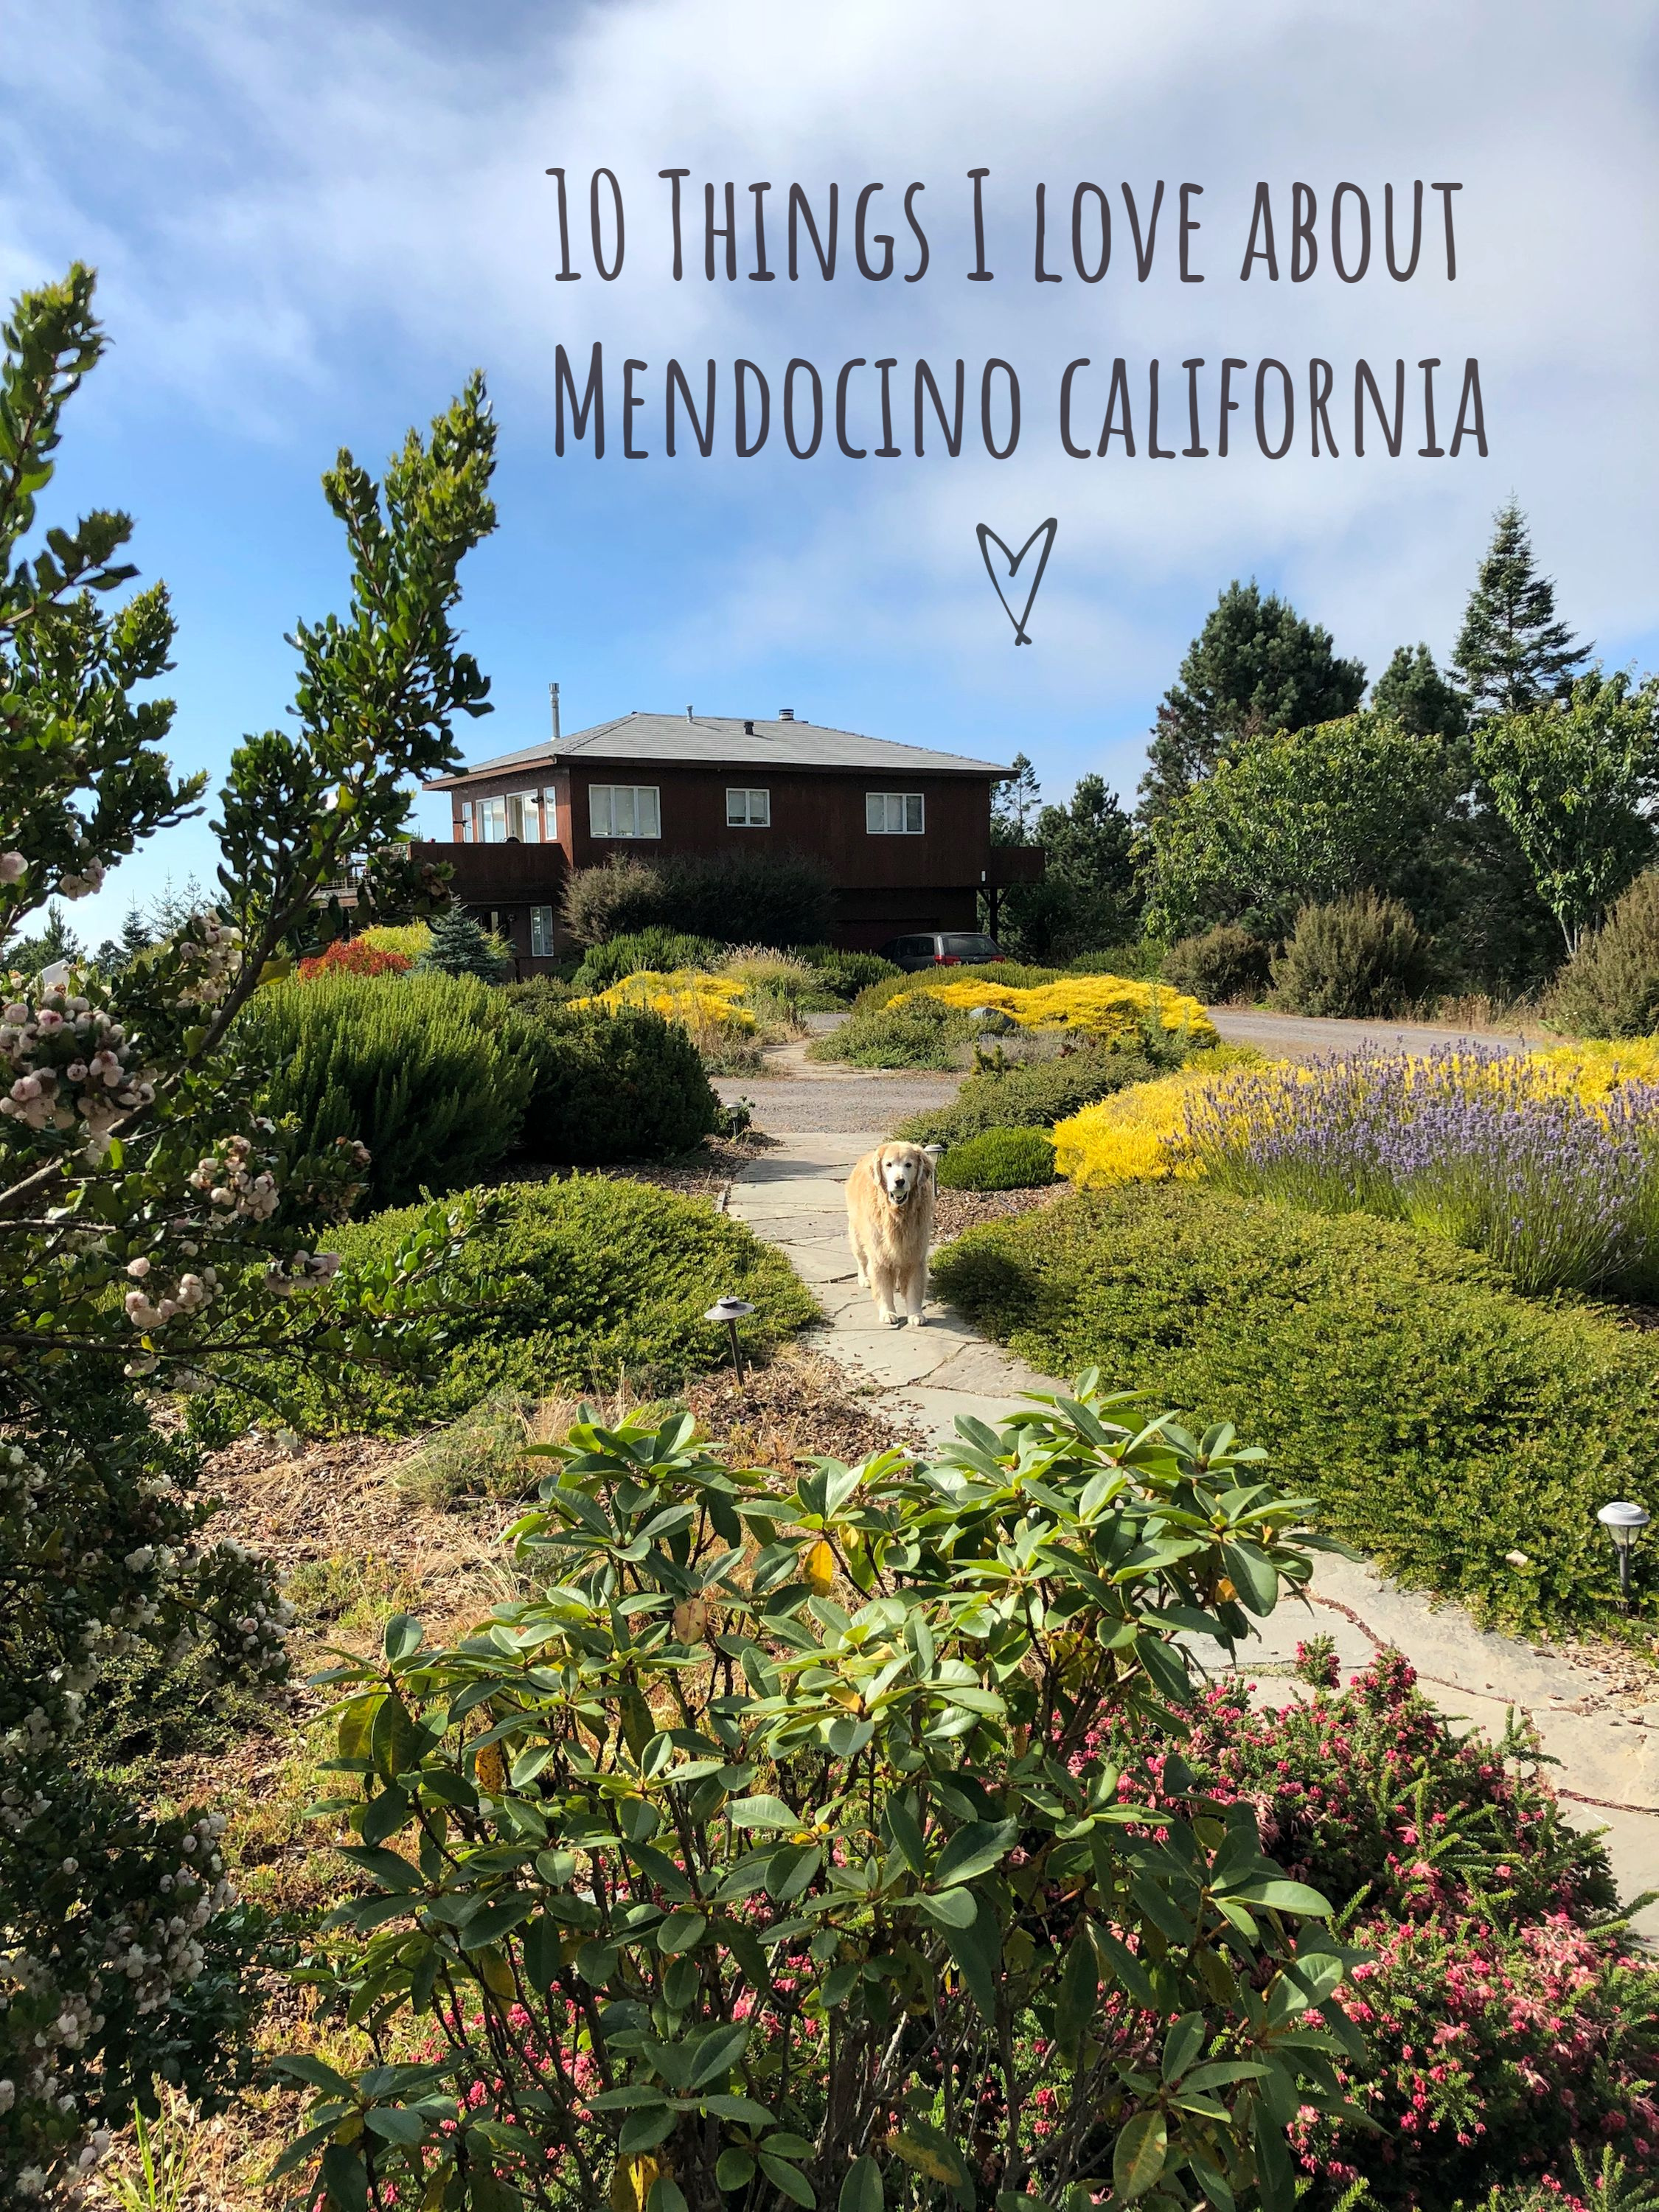 10 Things I Love About Mendocino California - Inspired Edibles